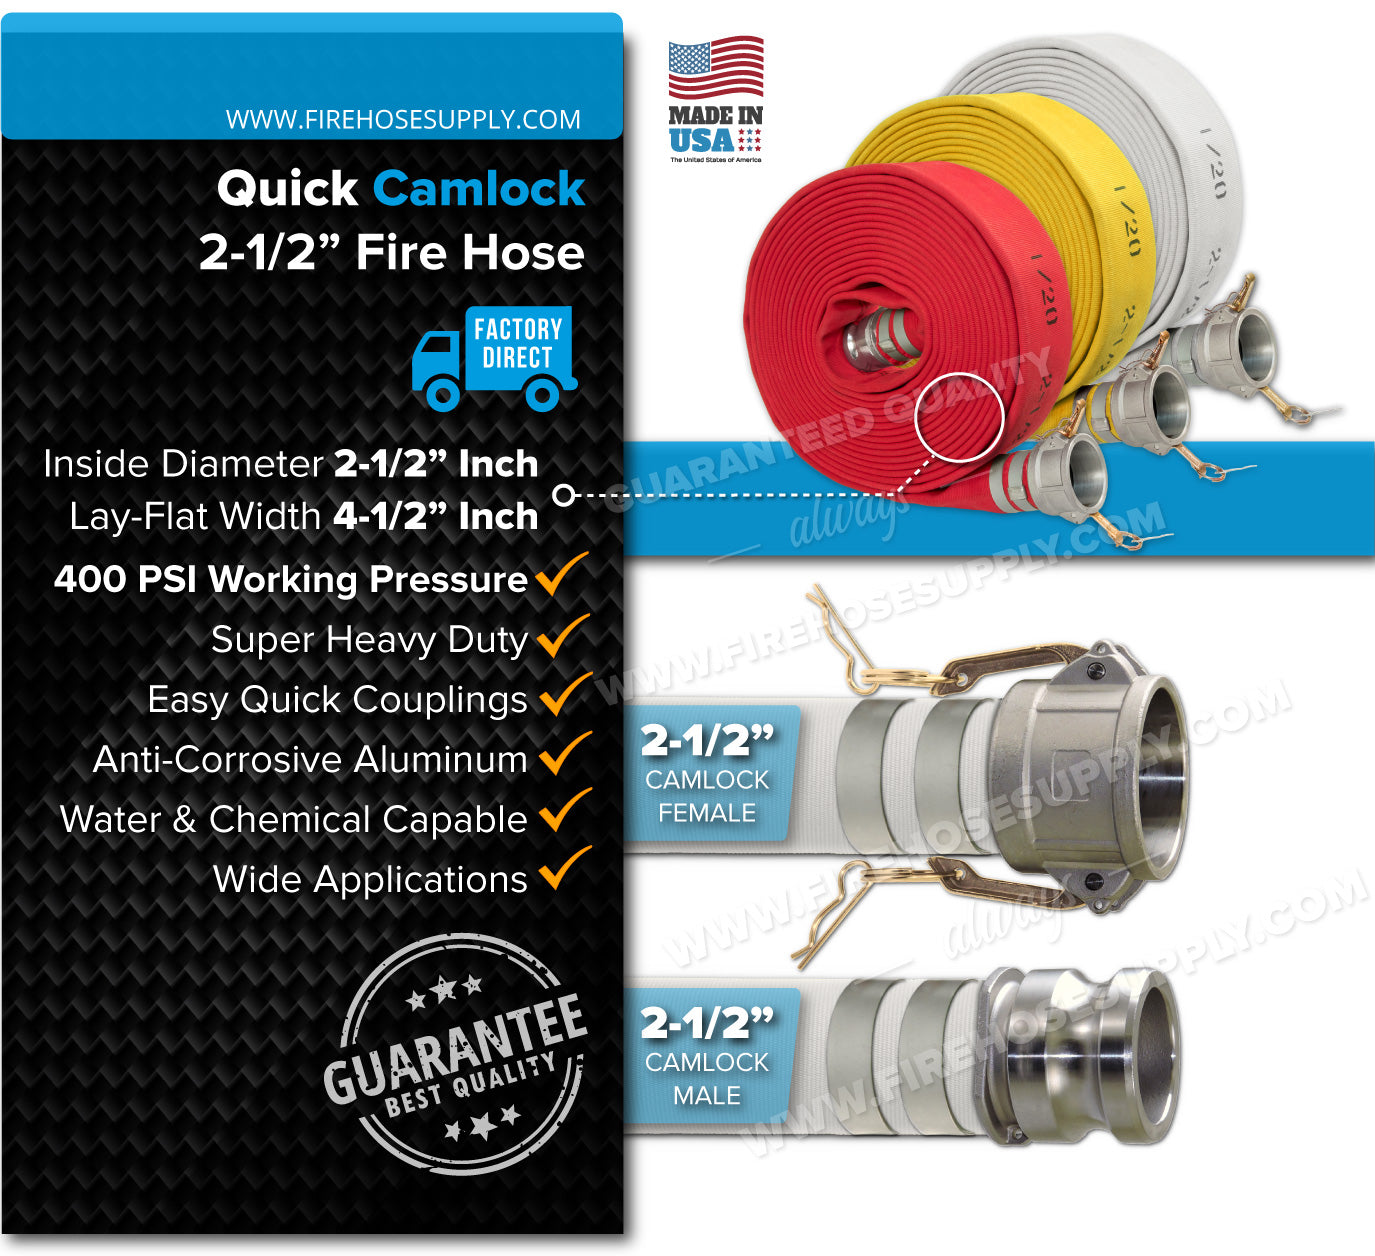 2-1-2 Inch Double Jacket Camlock Fire Hose Overview